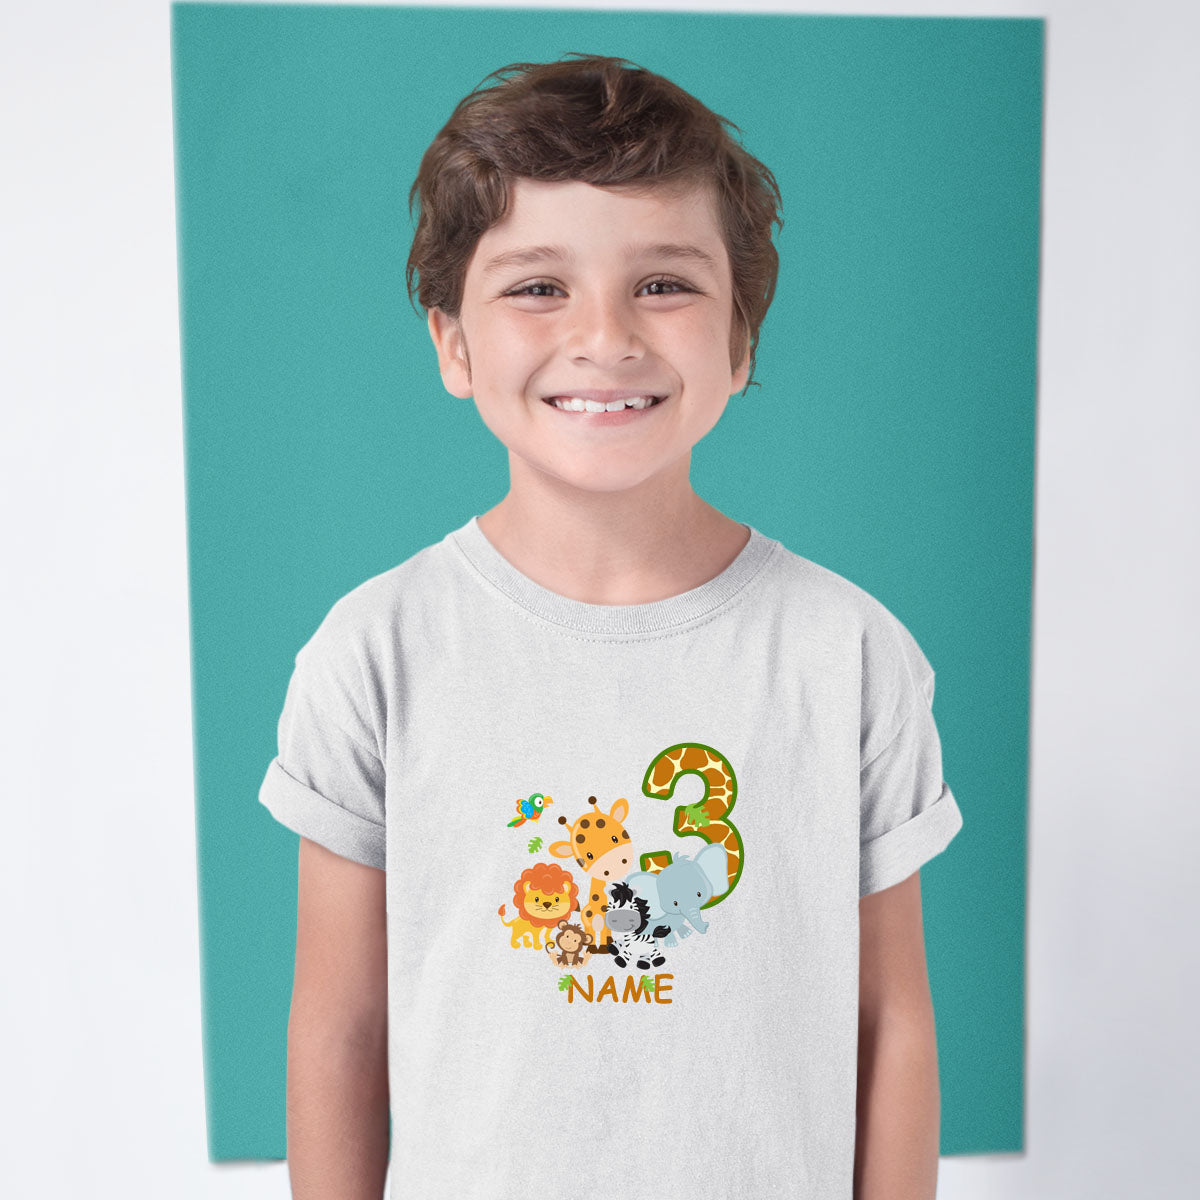 Sprinklecart Personalized Safari Themed Birthday T Shirt | Customized 3rd Birthday Wear